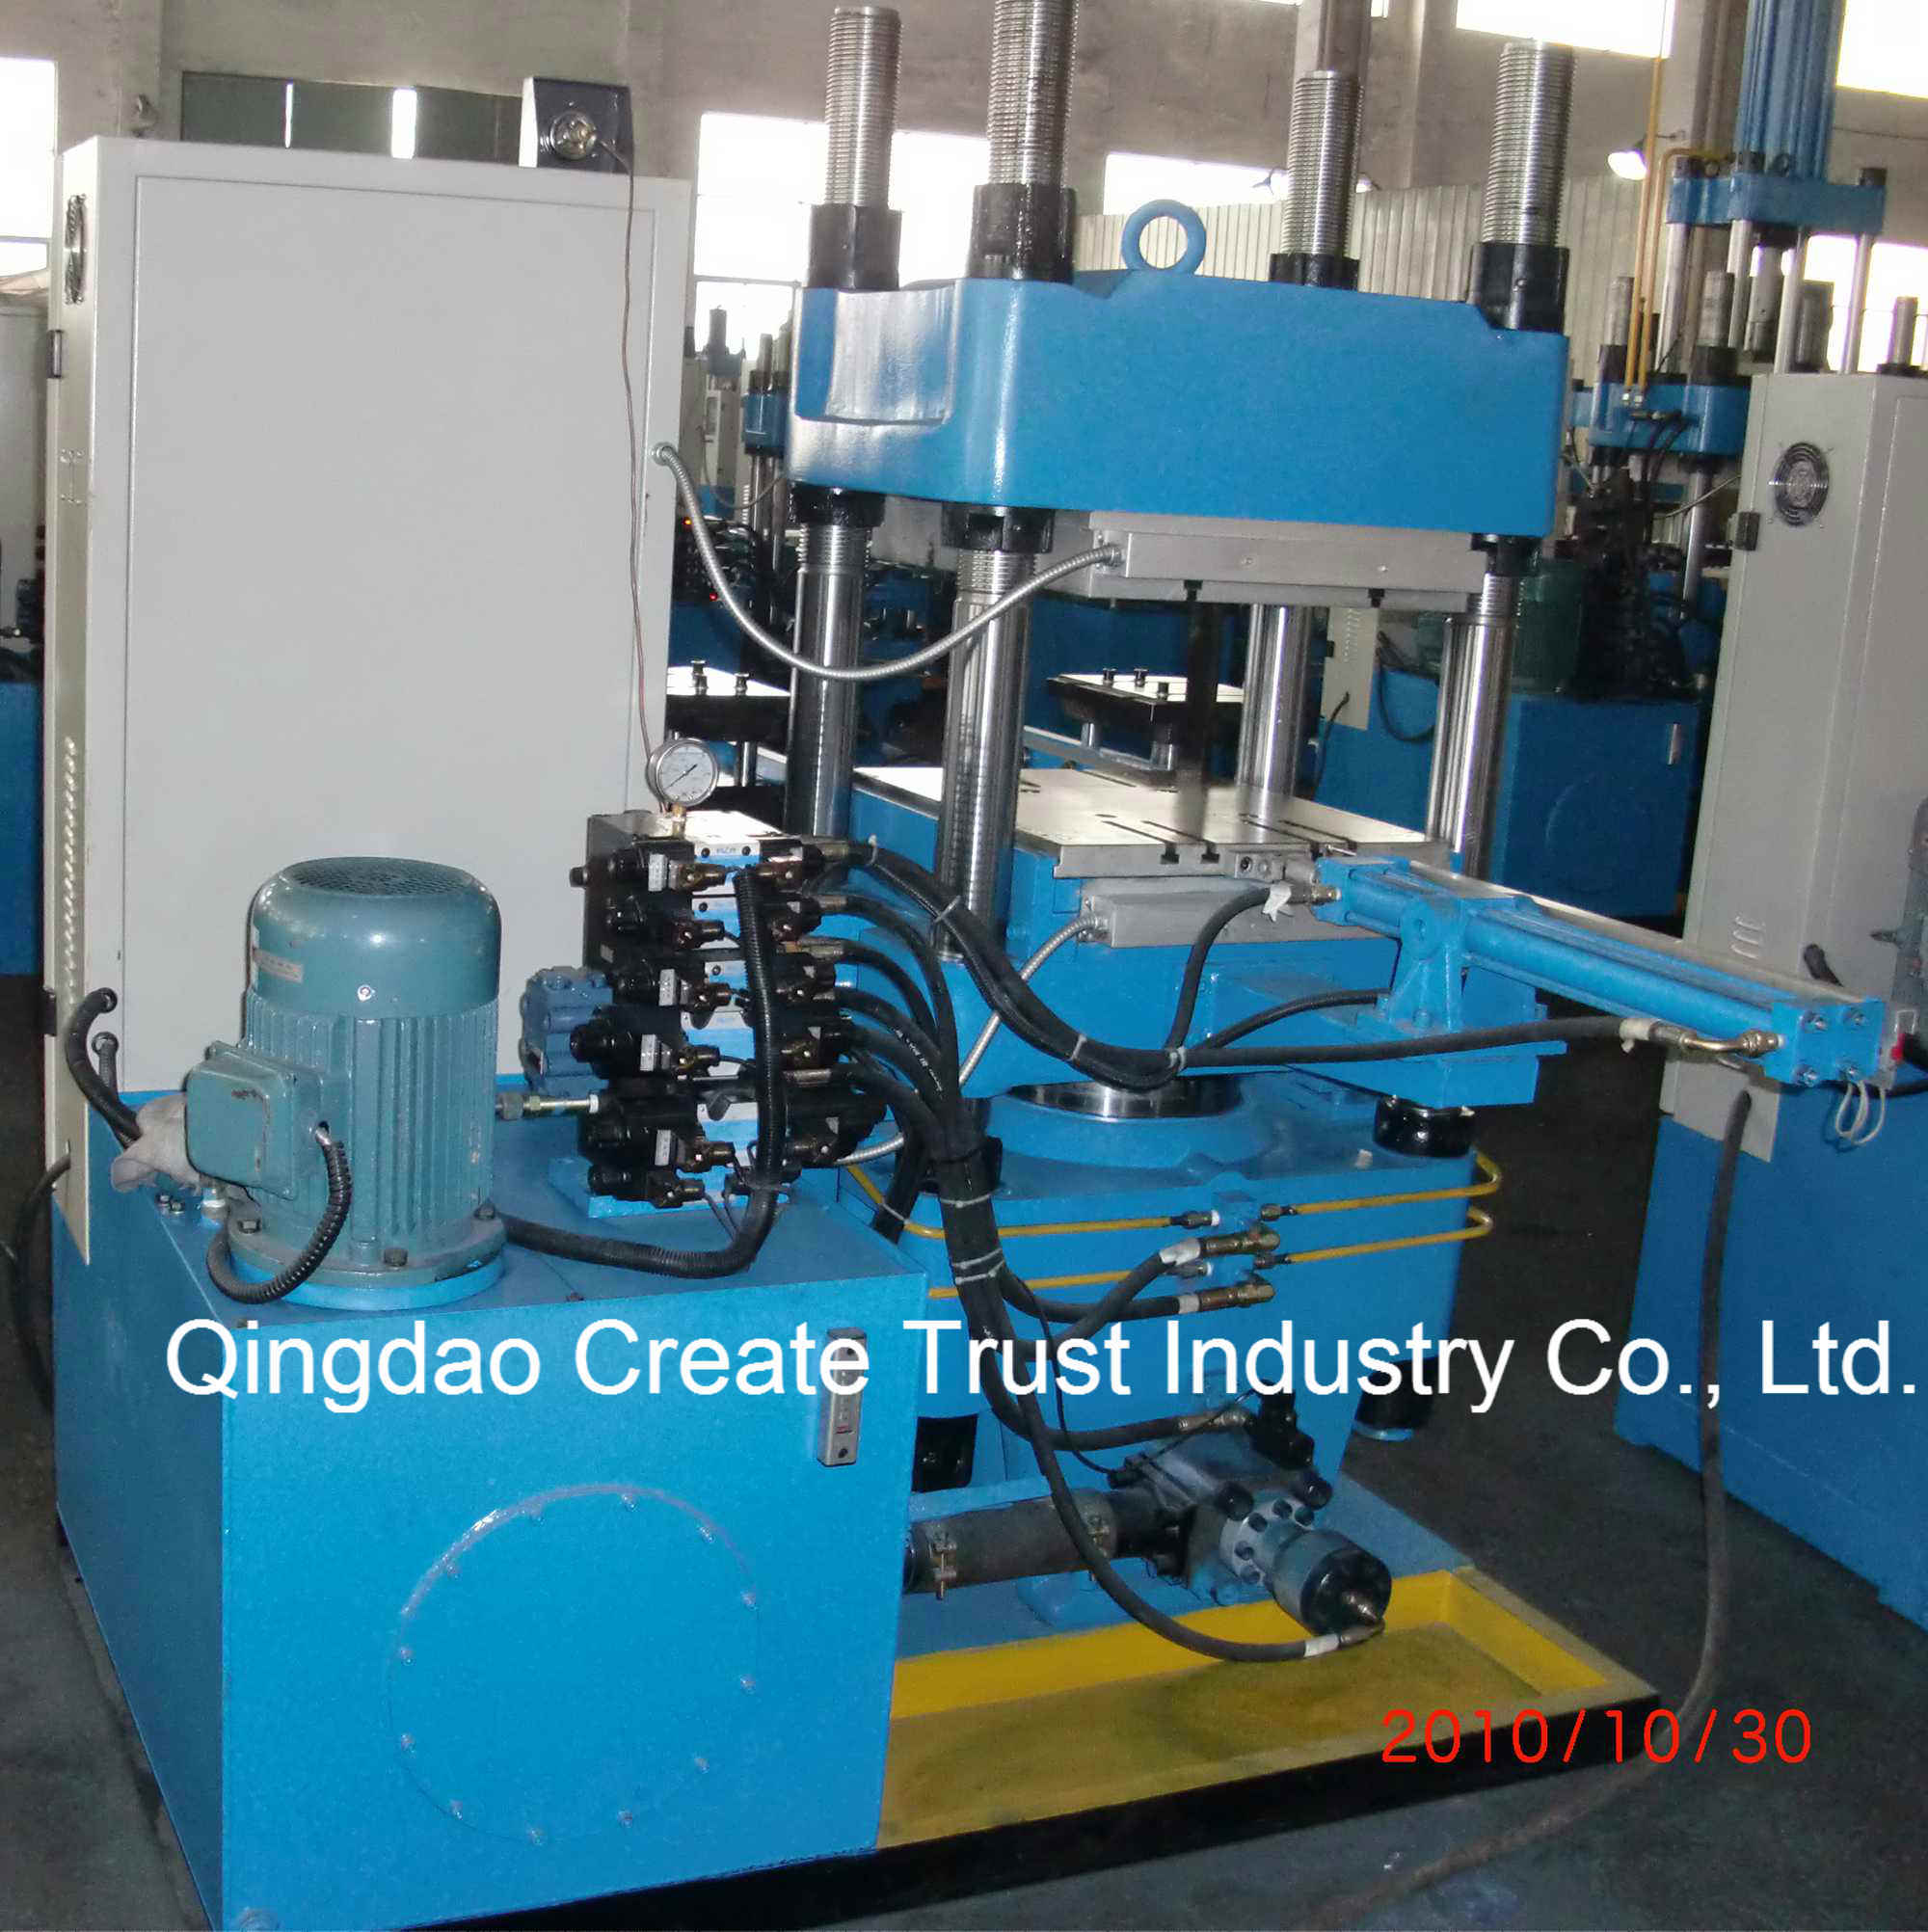 New Technical Full Automatic Rubber Plate Vulcanizing Press/Rubber Vulcanizing Machine (CE/ISO9001) pictures & photos